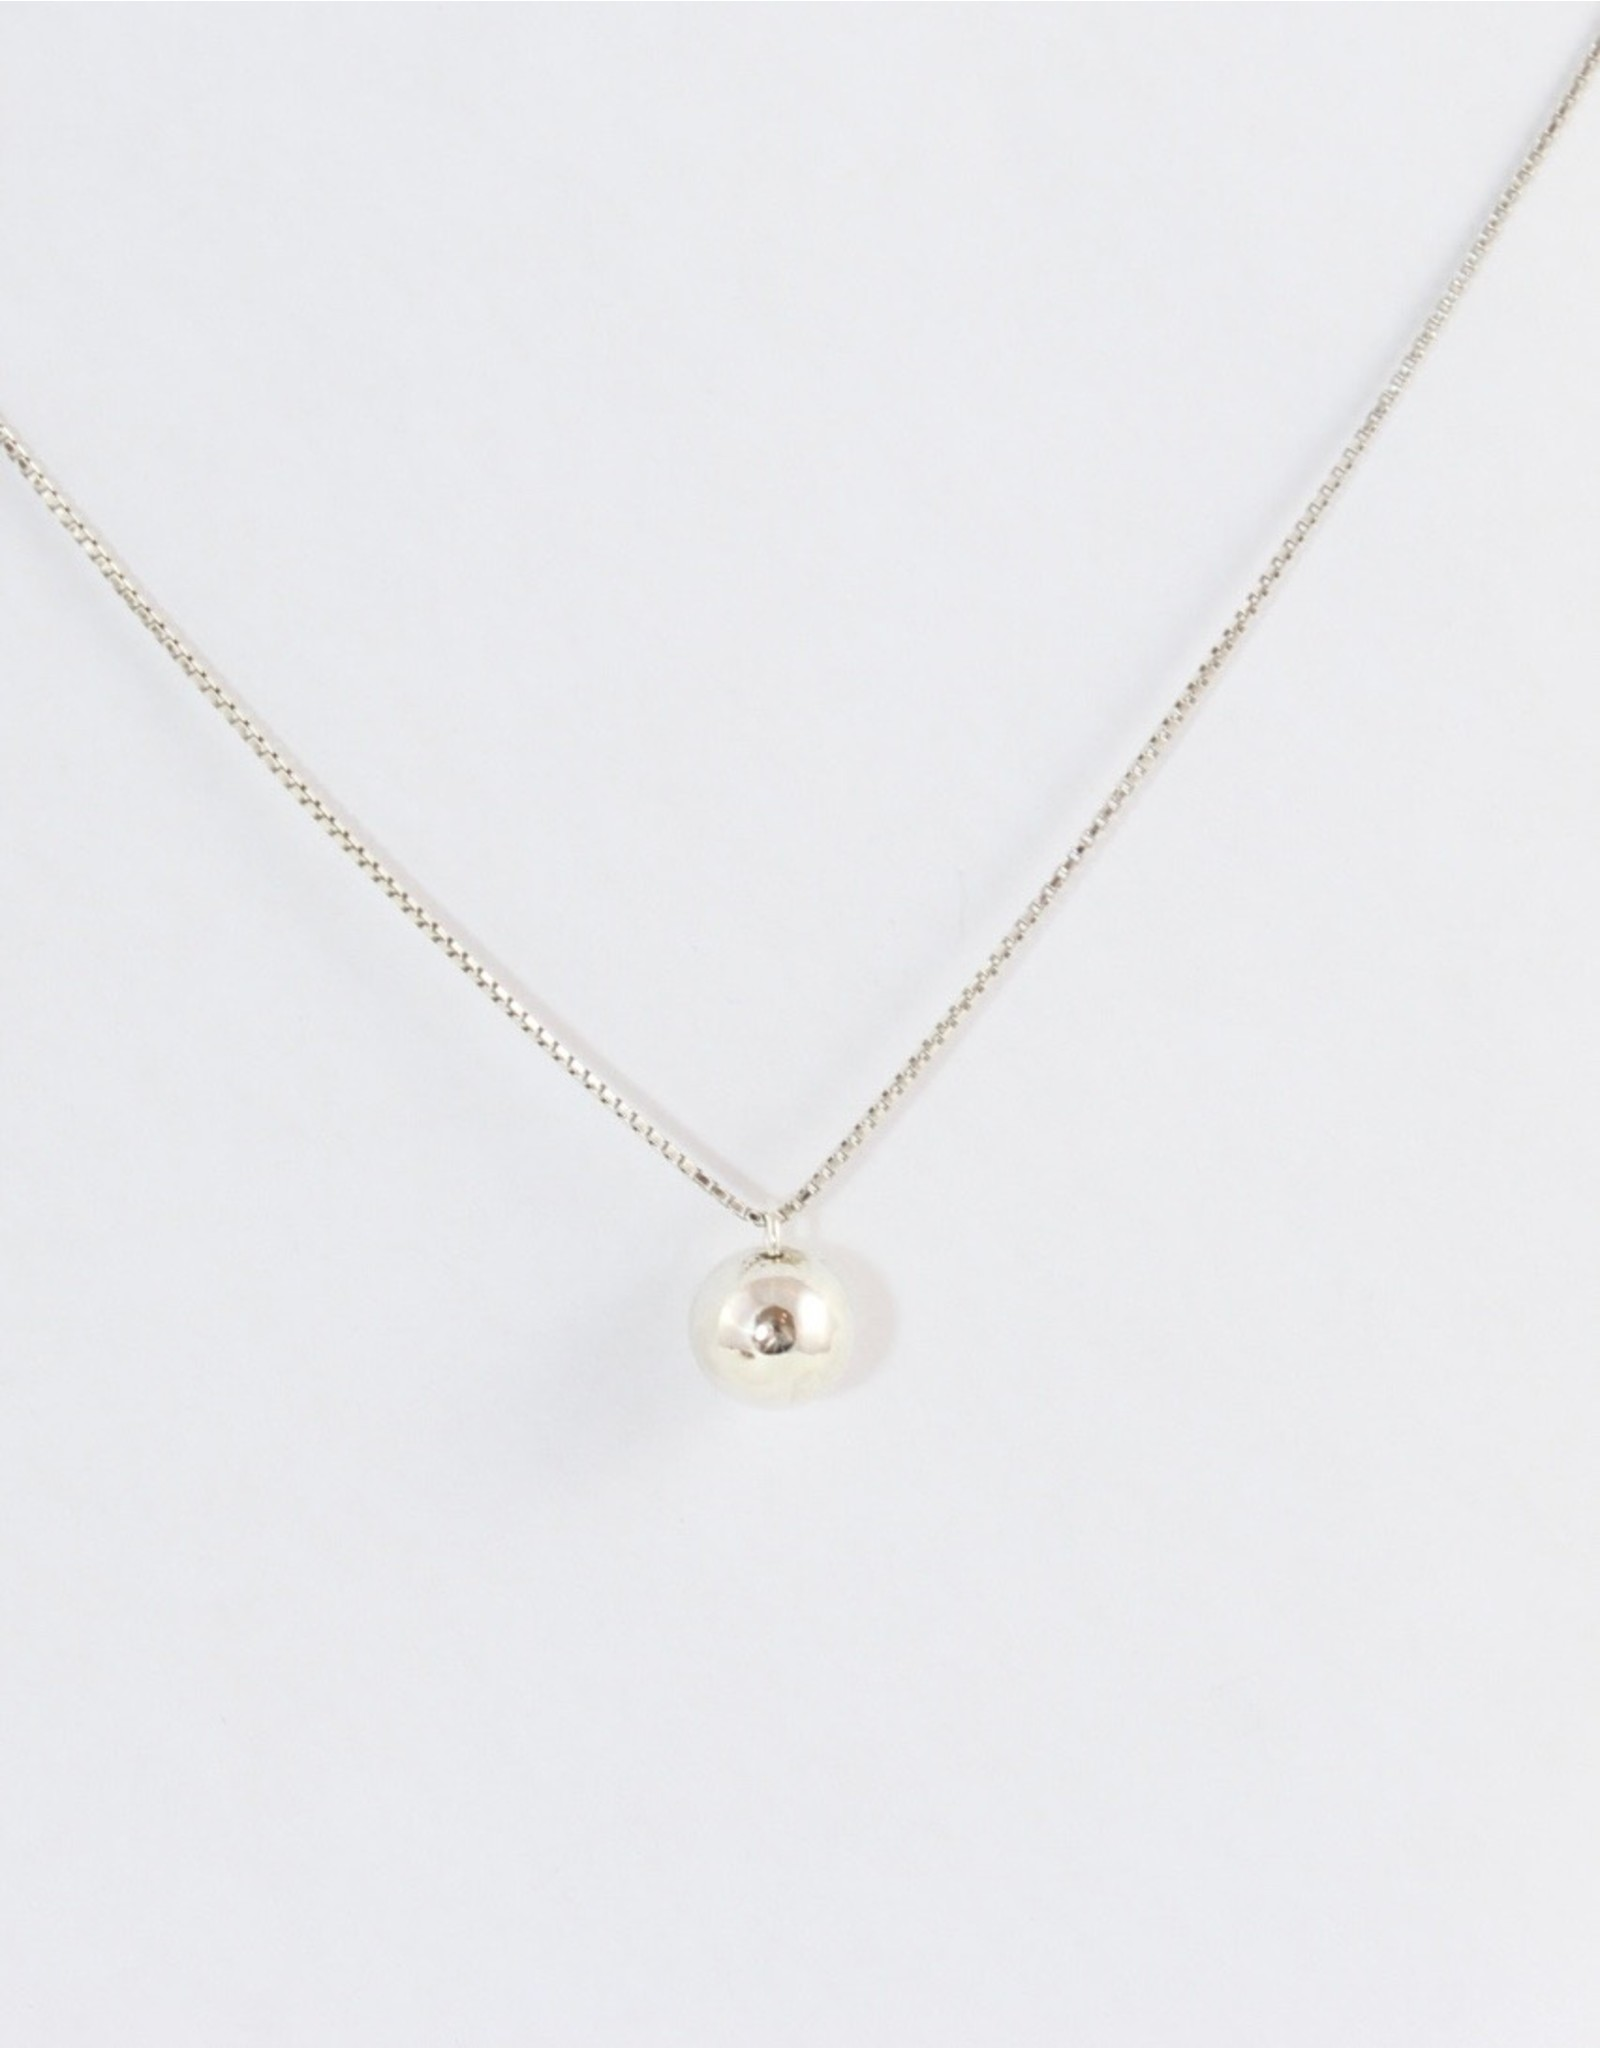 Karen Graham Ball & Chain Necklace by Karen Graham